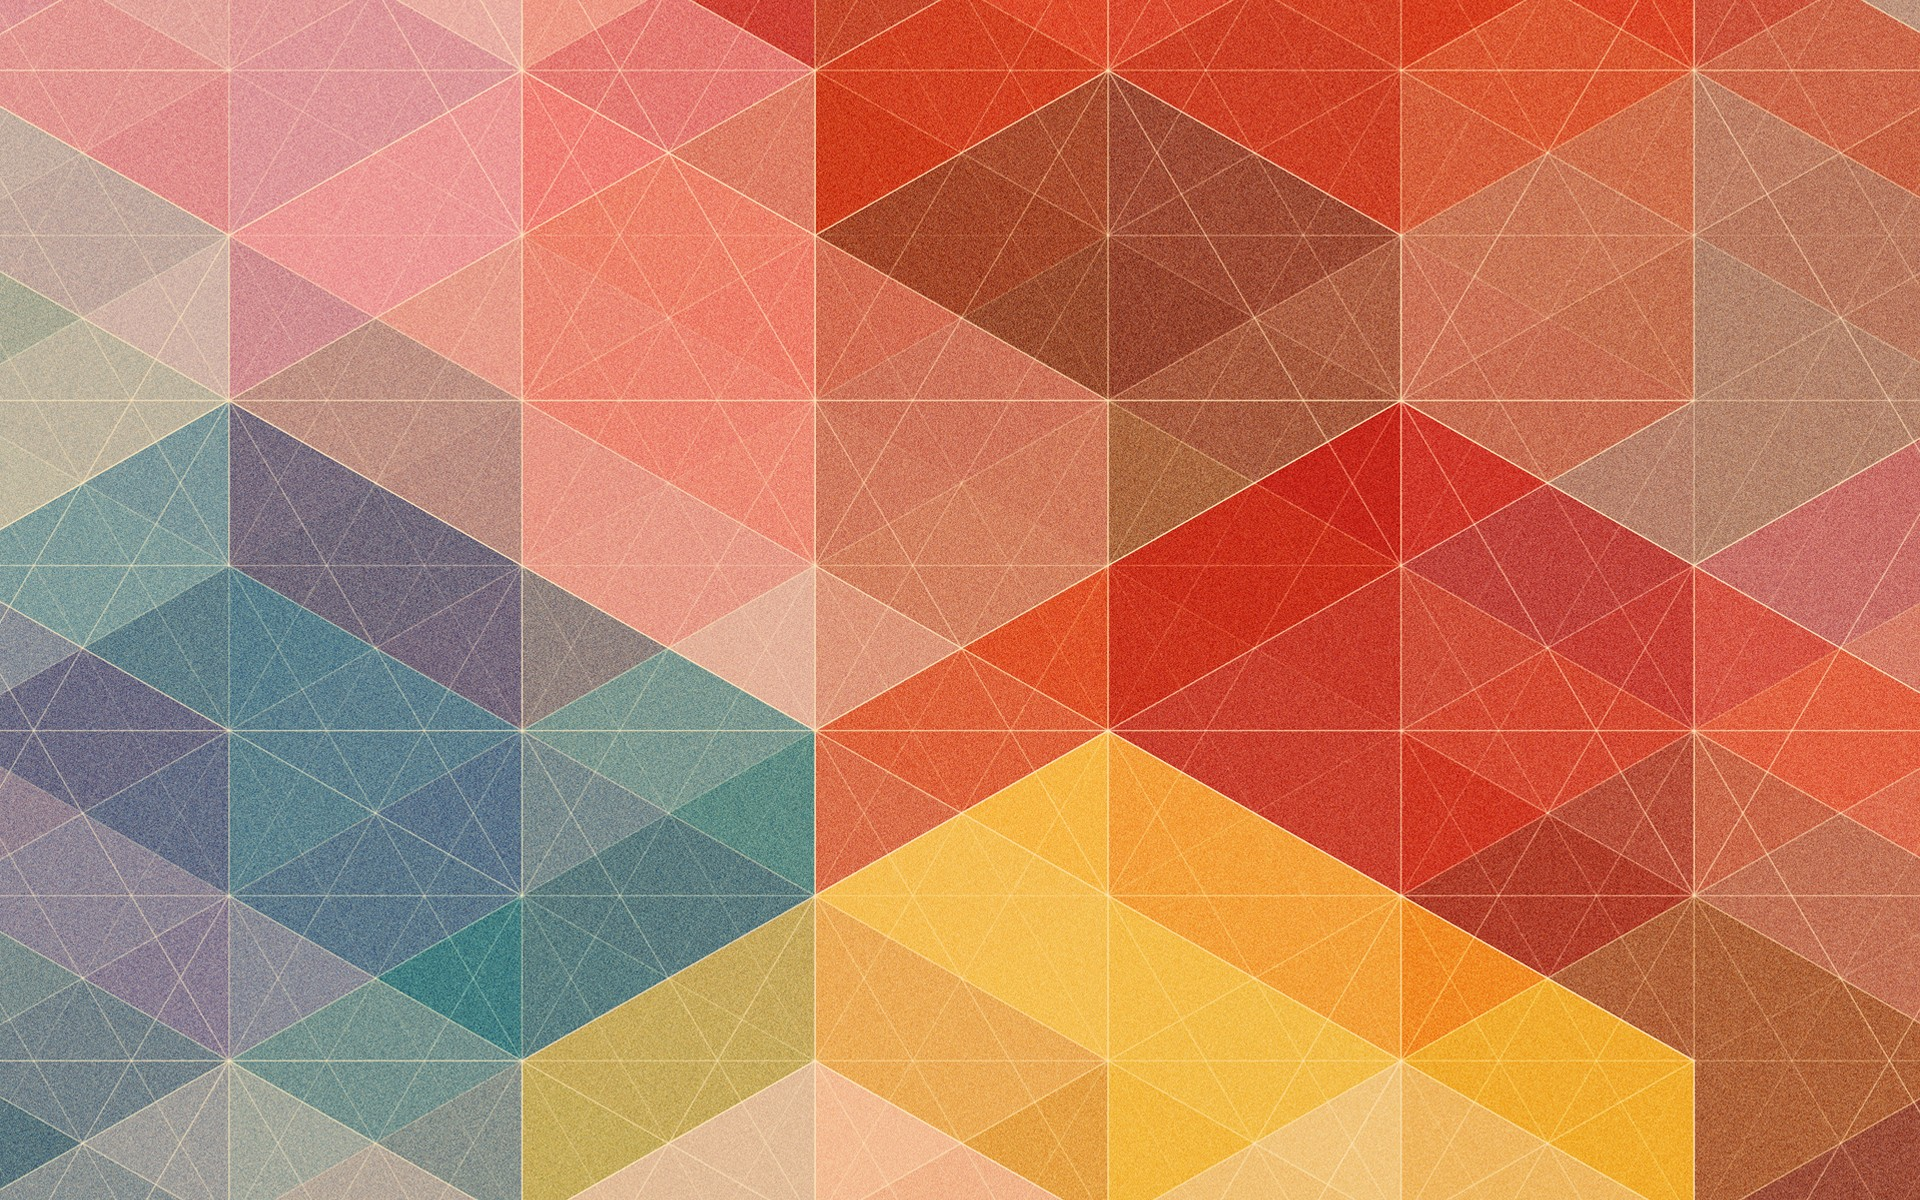 colorful shapes background created - photo #23